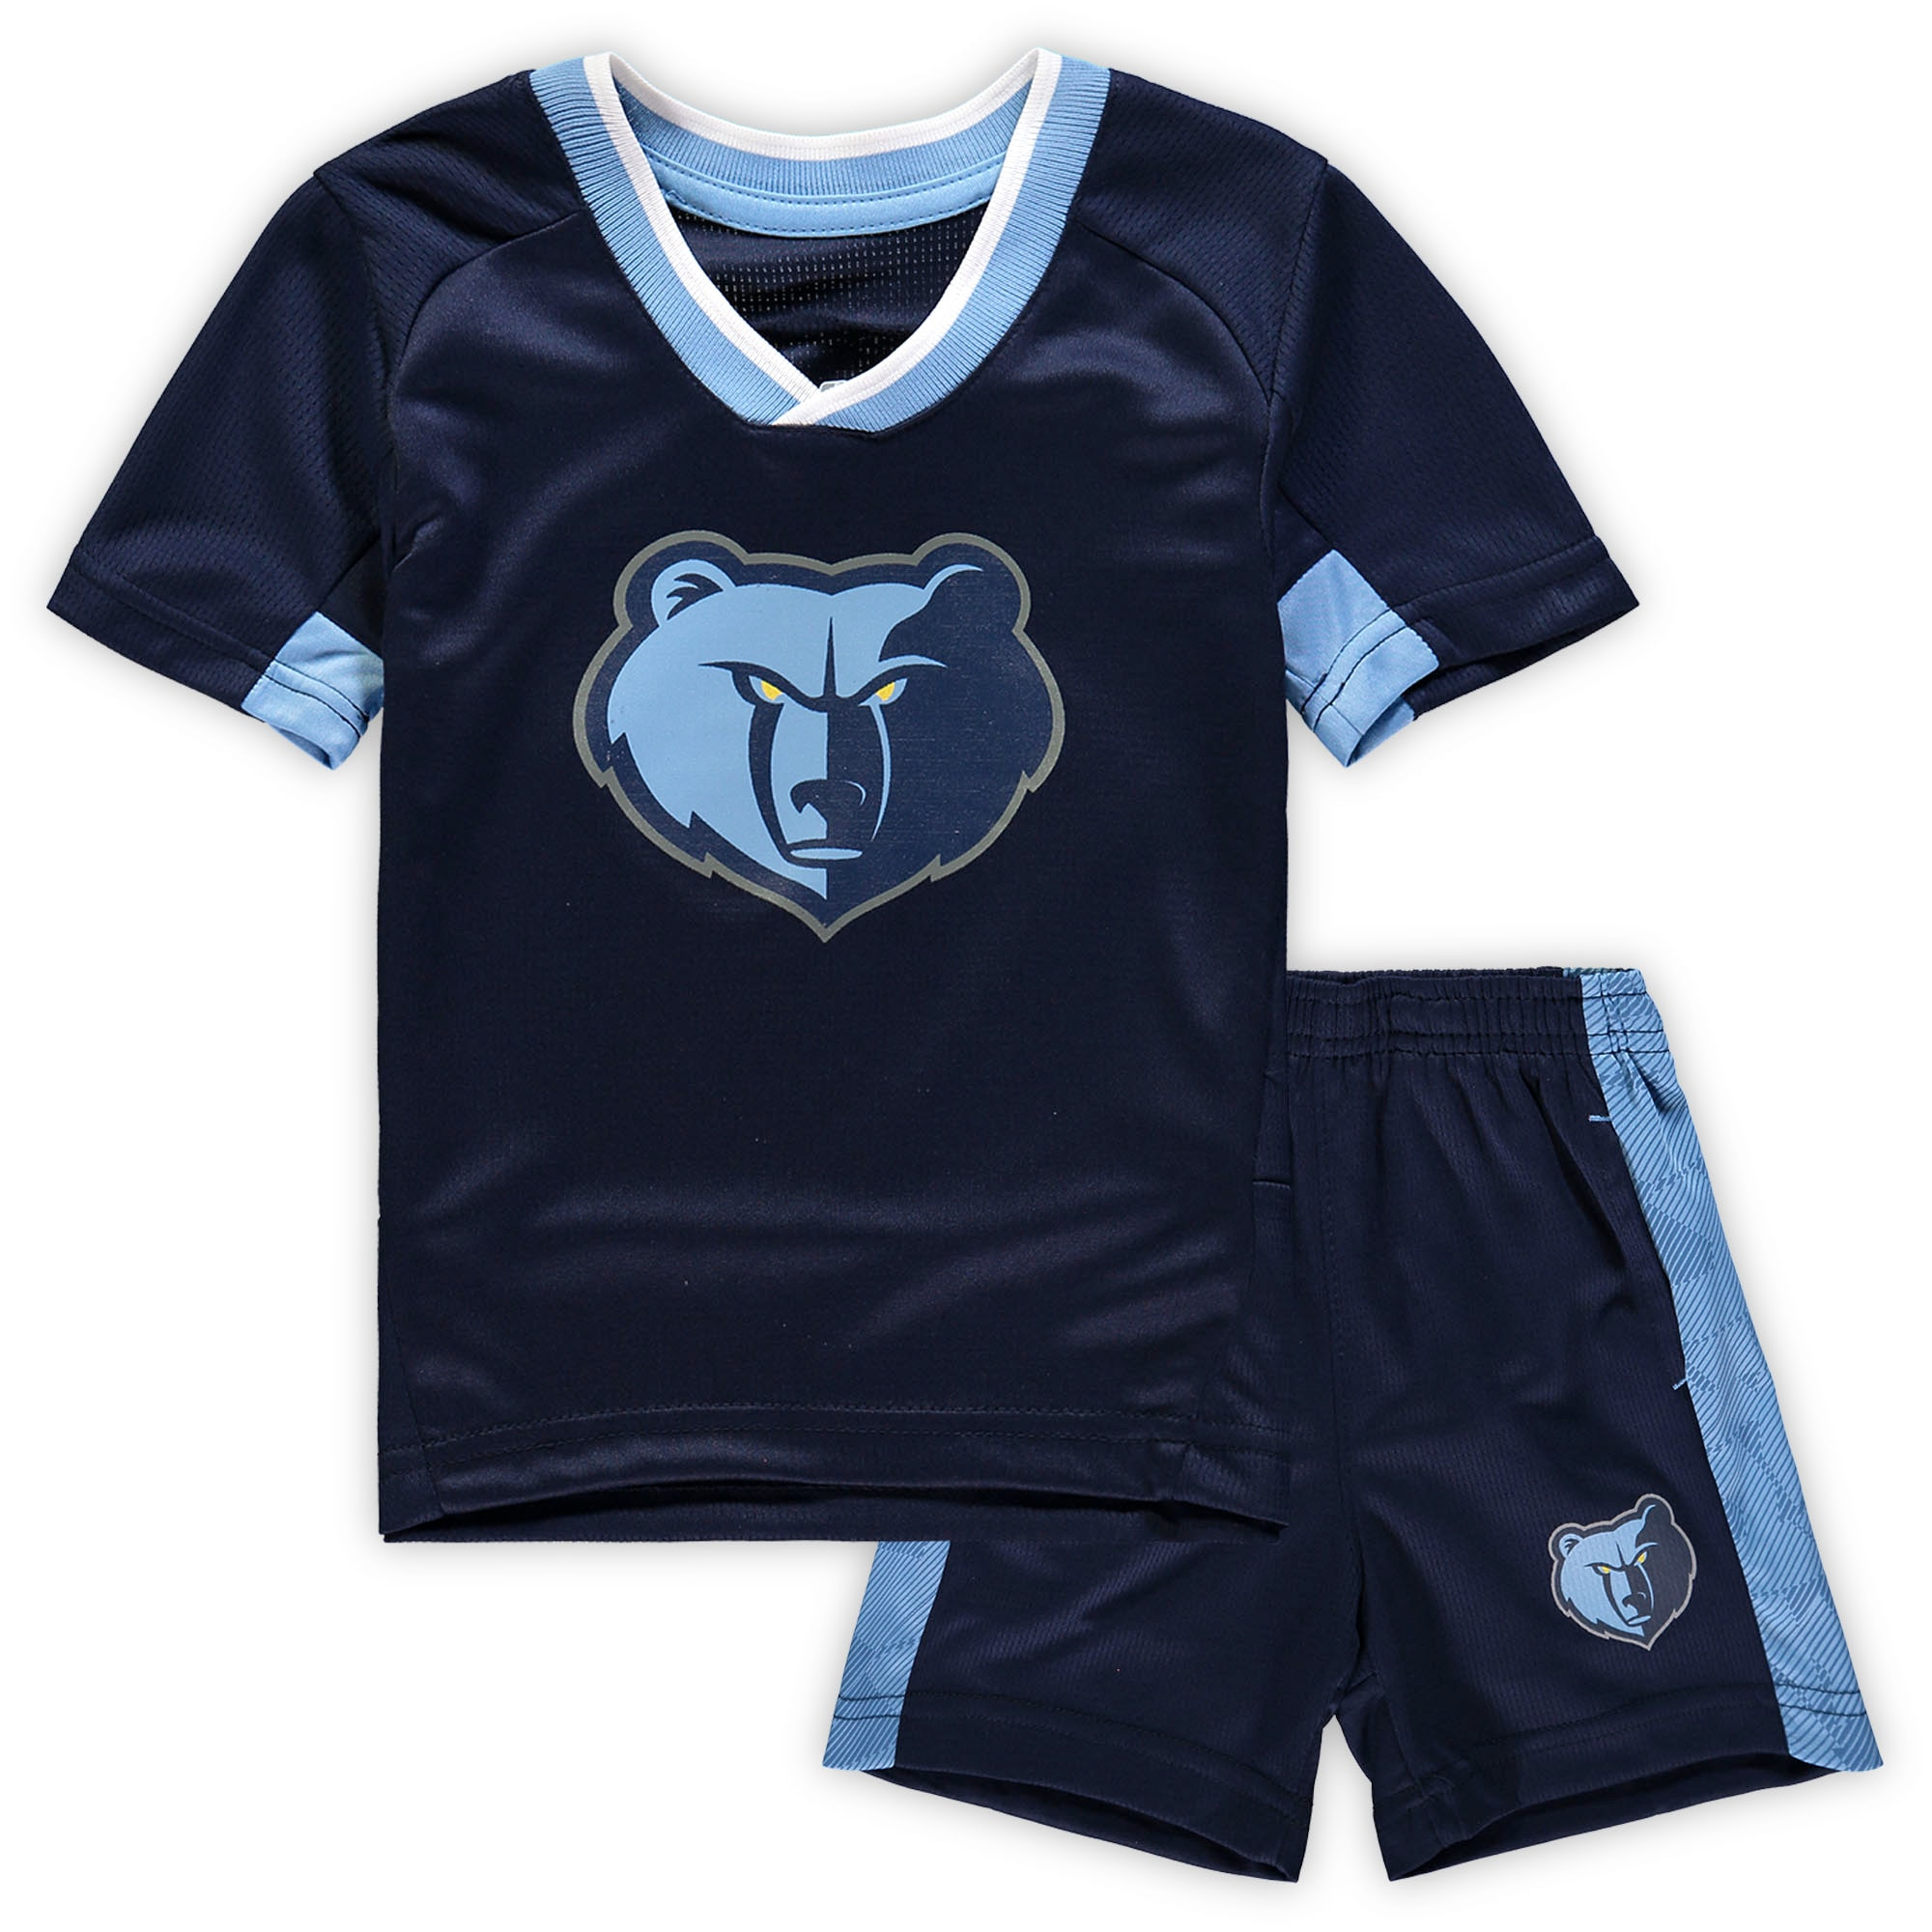 Memphis Grizzlies Preschool & Toddler Double Dribble T-Shirt & Shorts Set - Navy